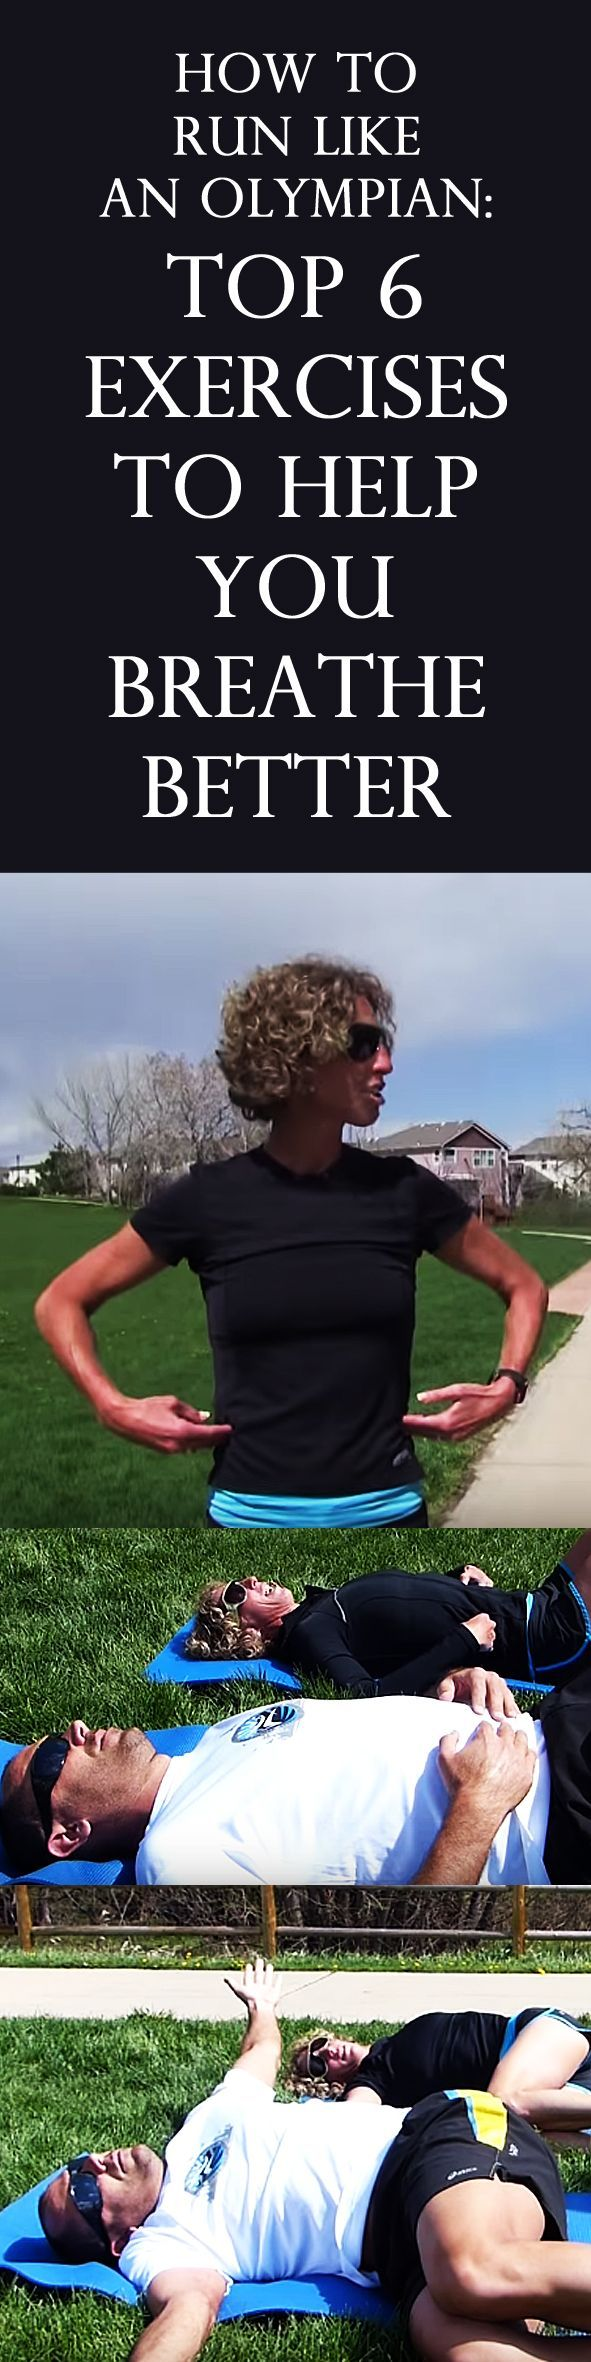 Joanna Zeiger, a former professional triathlete, Olympian and Ironman 70.3 World Champion will discuss and demonstrate the top six exercises for runners and triathletes